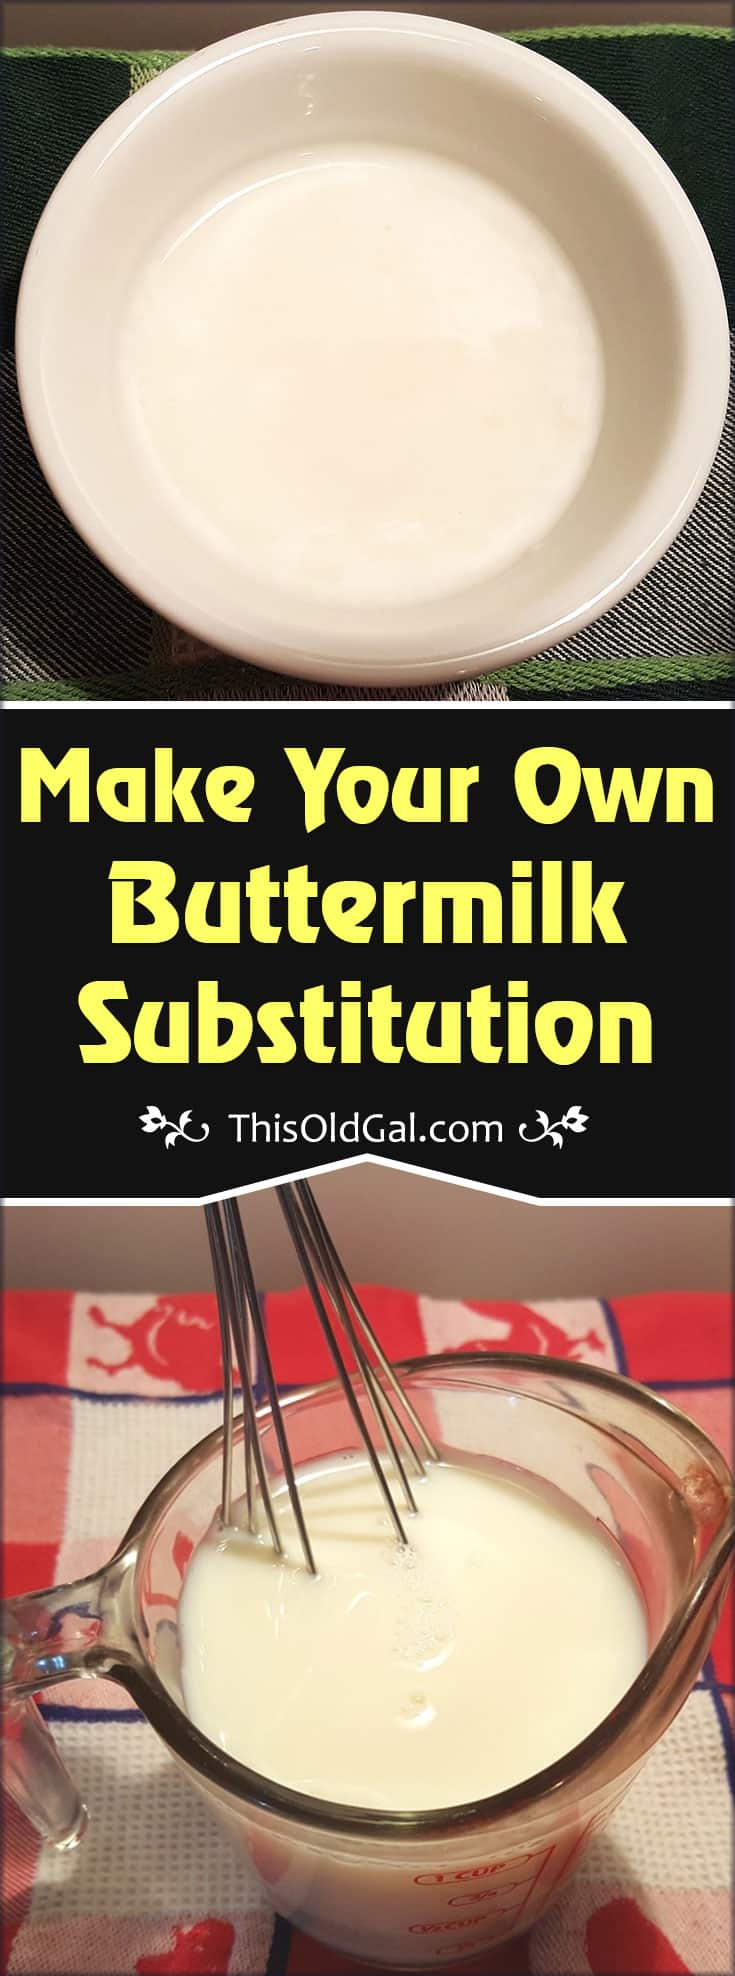 Make Your Own Buttermilk Substitution